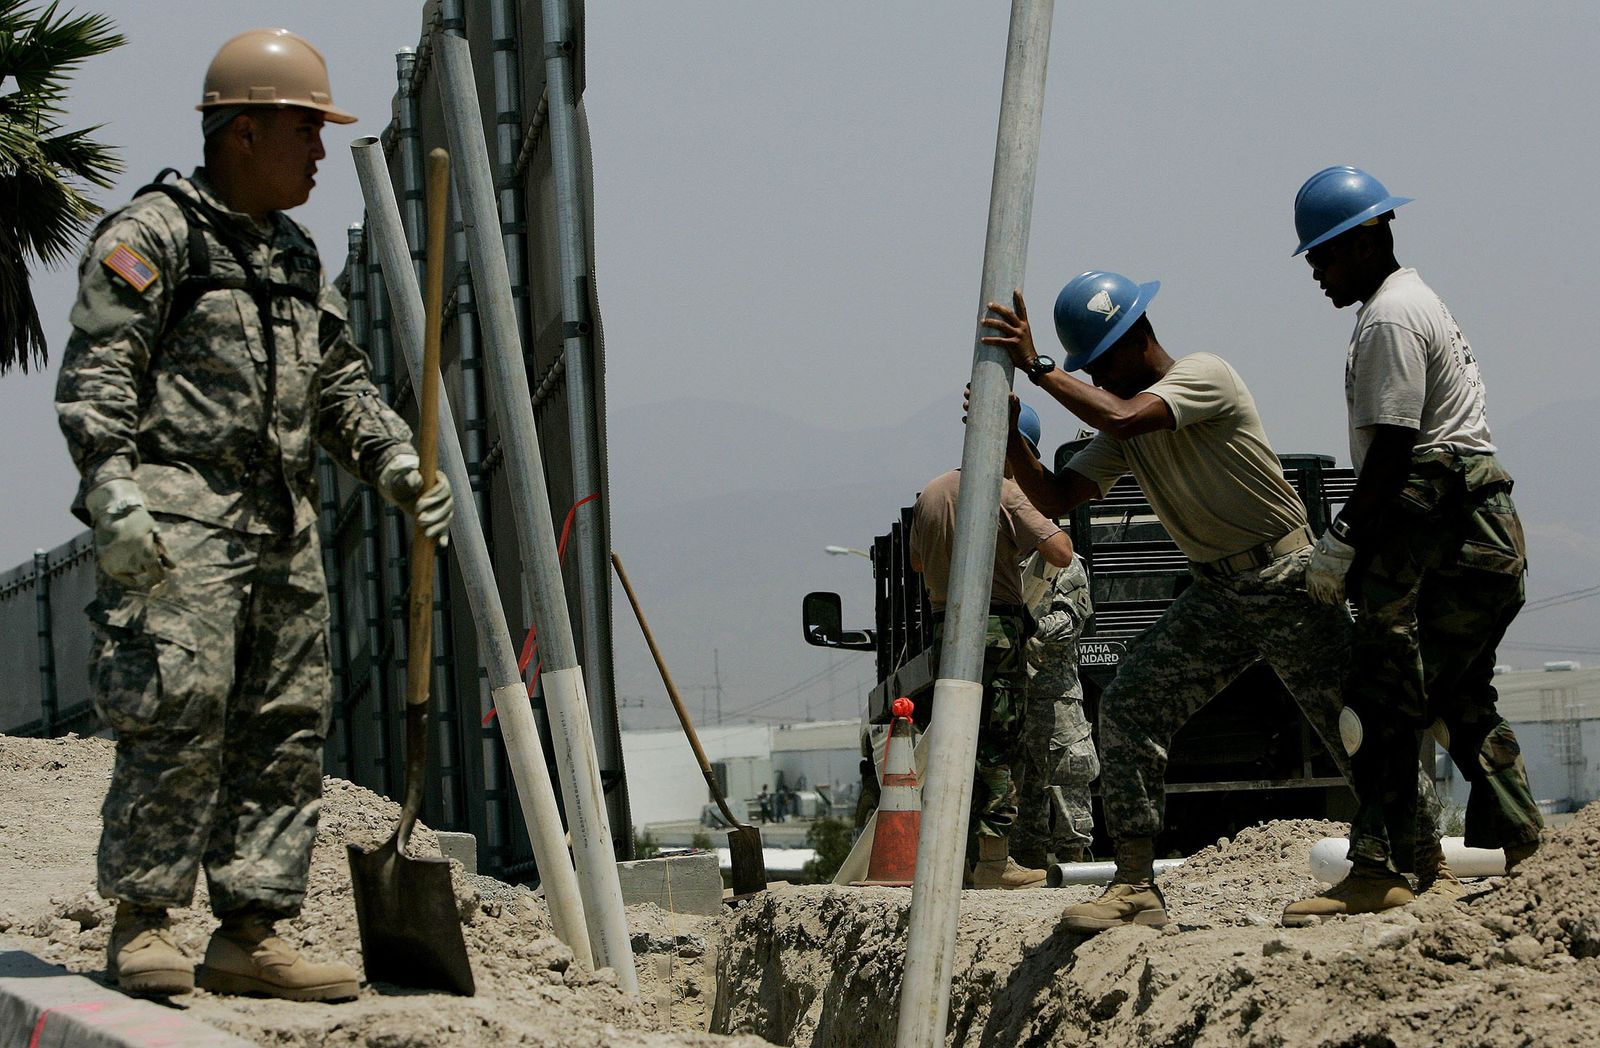 OTAY MESA, CA - JULY 25: Members of the California National Guard prepare to bury plastic pipes for housing electrical wiring along the U.S.-Mexico Border July 25, 2006 in Otay Mesa, California. Approximately 1,000 volunteer Guardsmen are stationed along the California-Mexico border as part of Operation Jump Start, which is providing support for the border patrol agents by repairing fences, improving roads and manning surveillance cameras. The Guard are prohibited from engaging in overt law enforcement. (Photo by Sandy Huffaker/Getty Images)